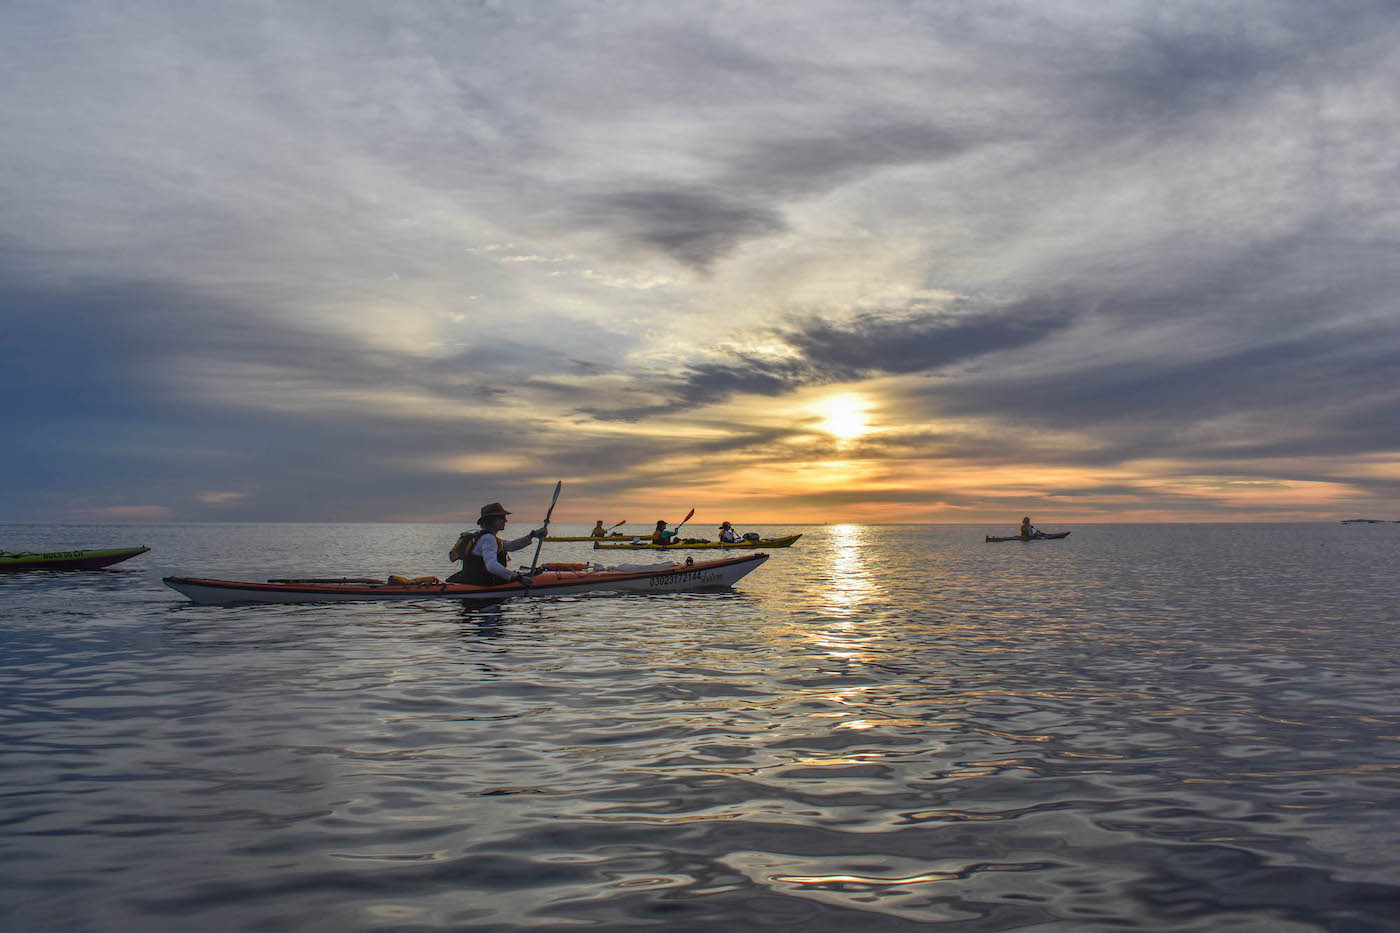 NOLS students paddle kayaks on silvery calm water with sun peeking through dark clouds